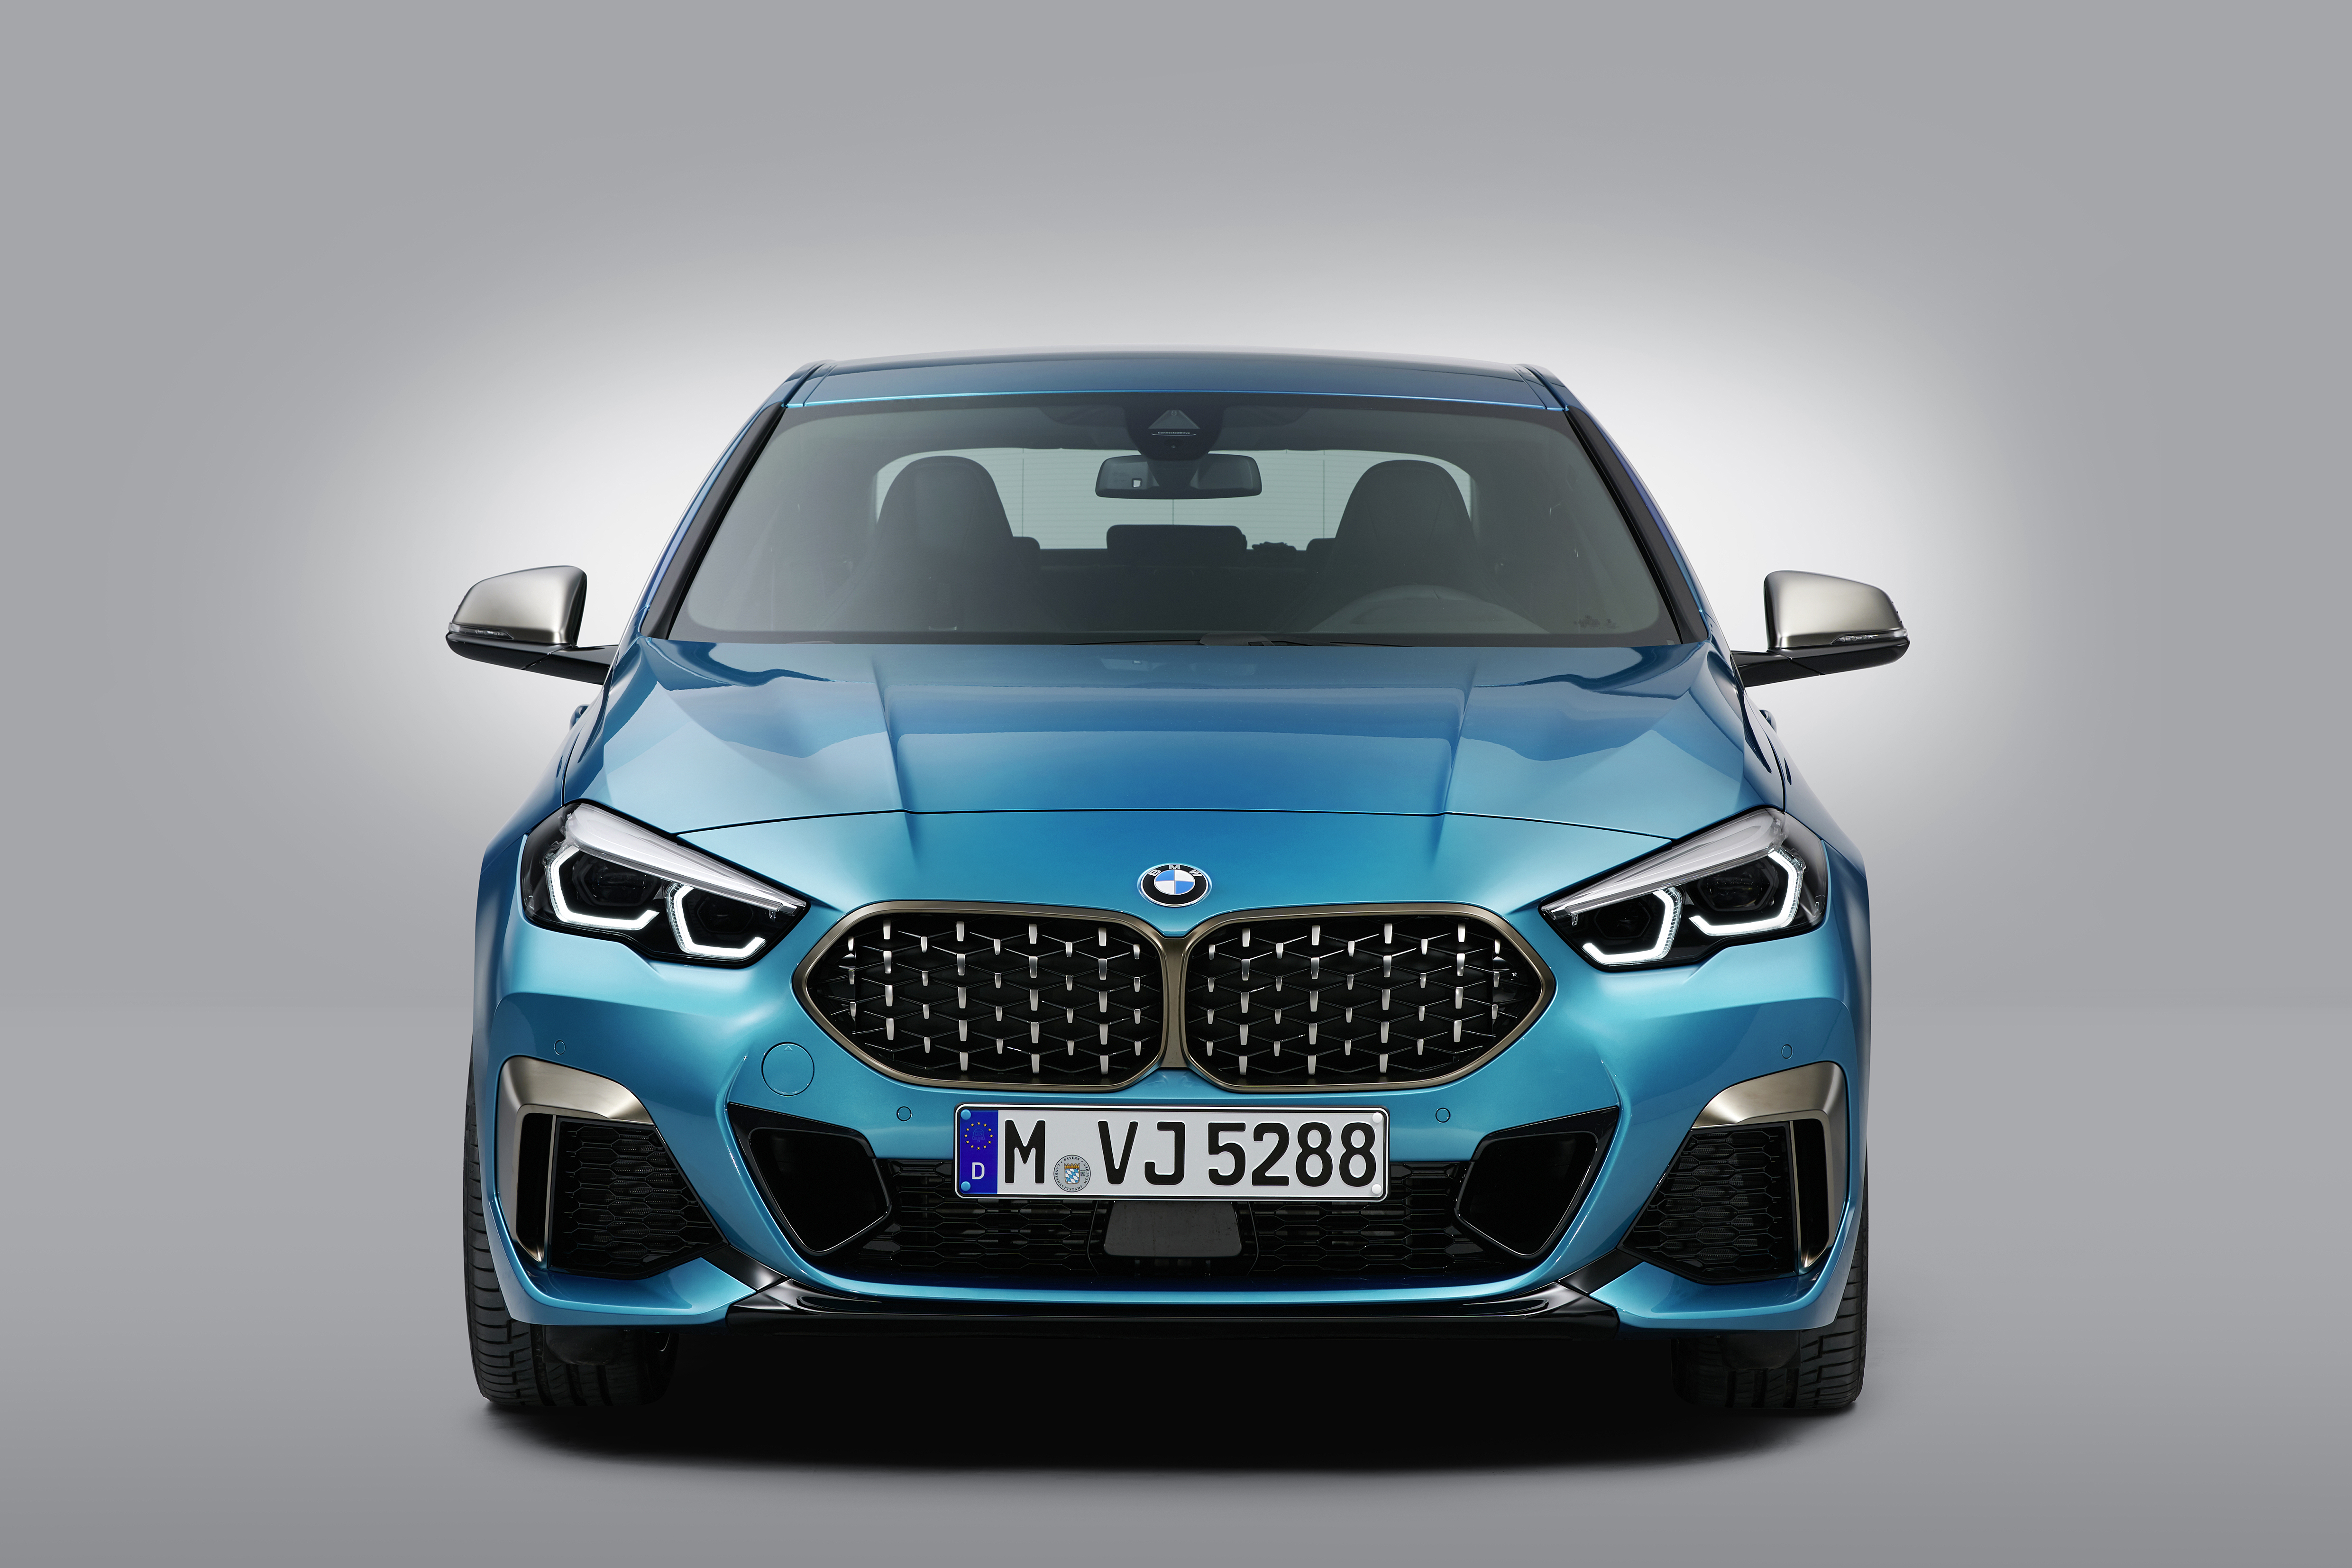 What do you think of BMW's new grille?